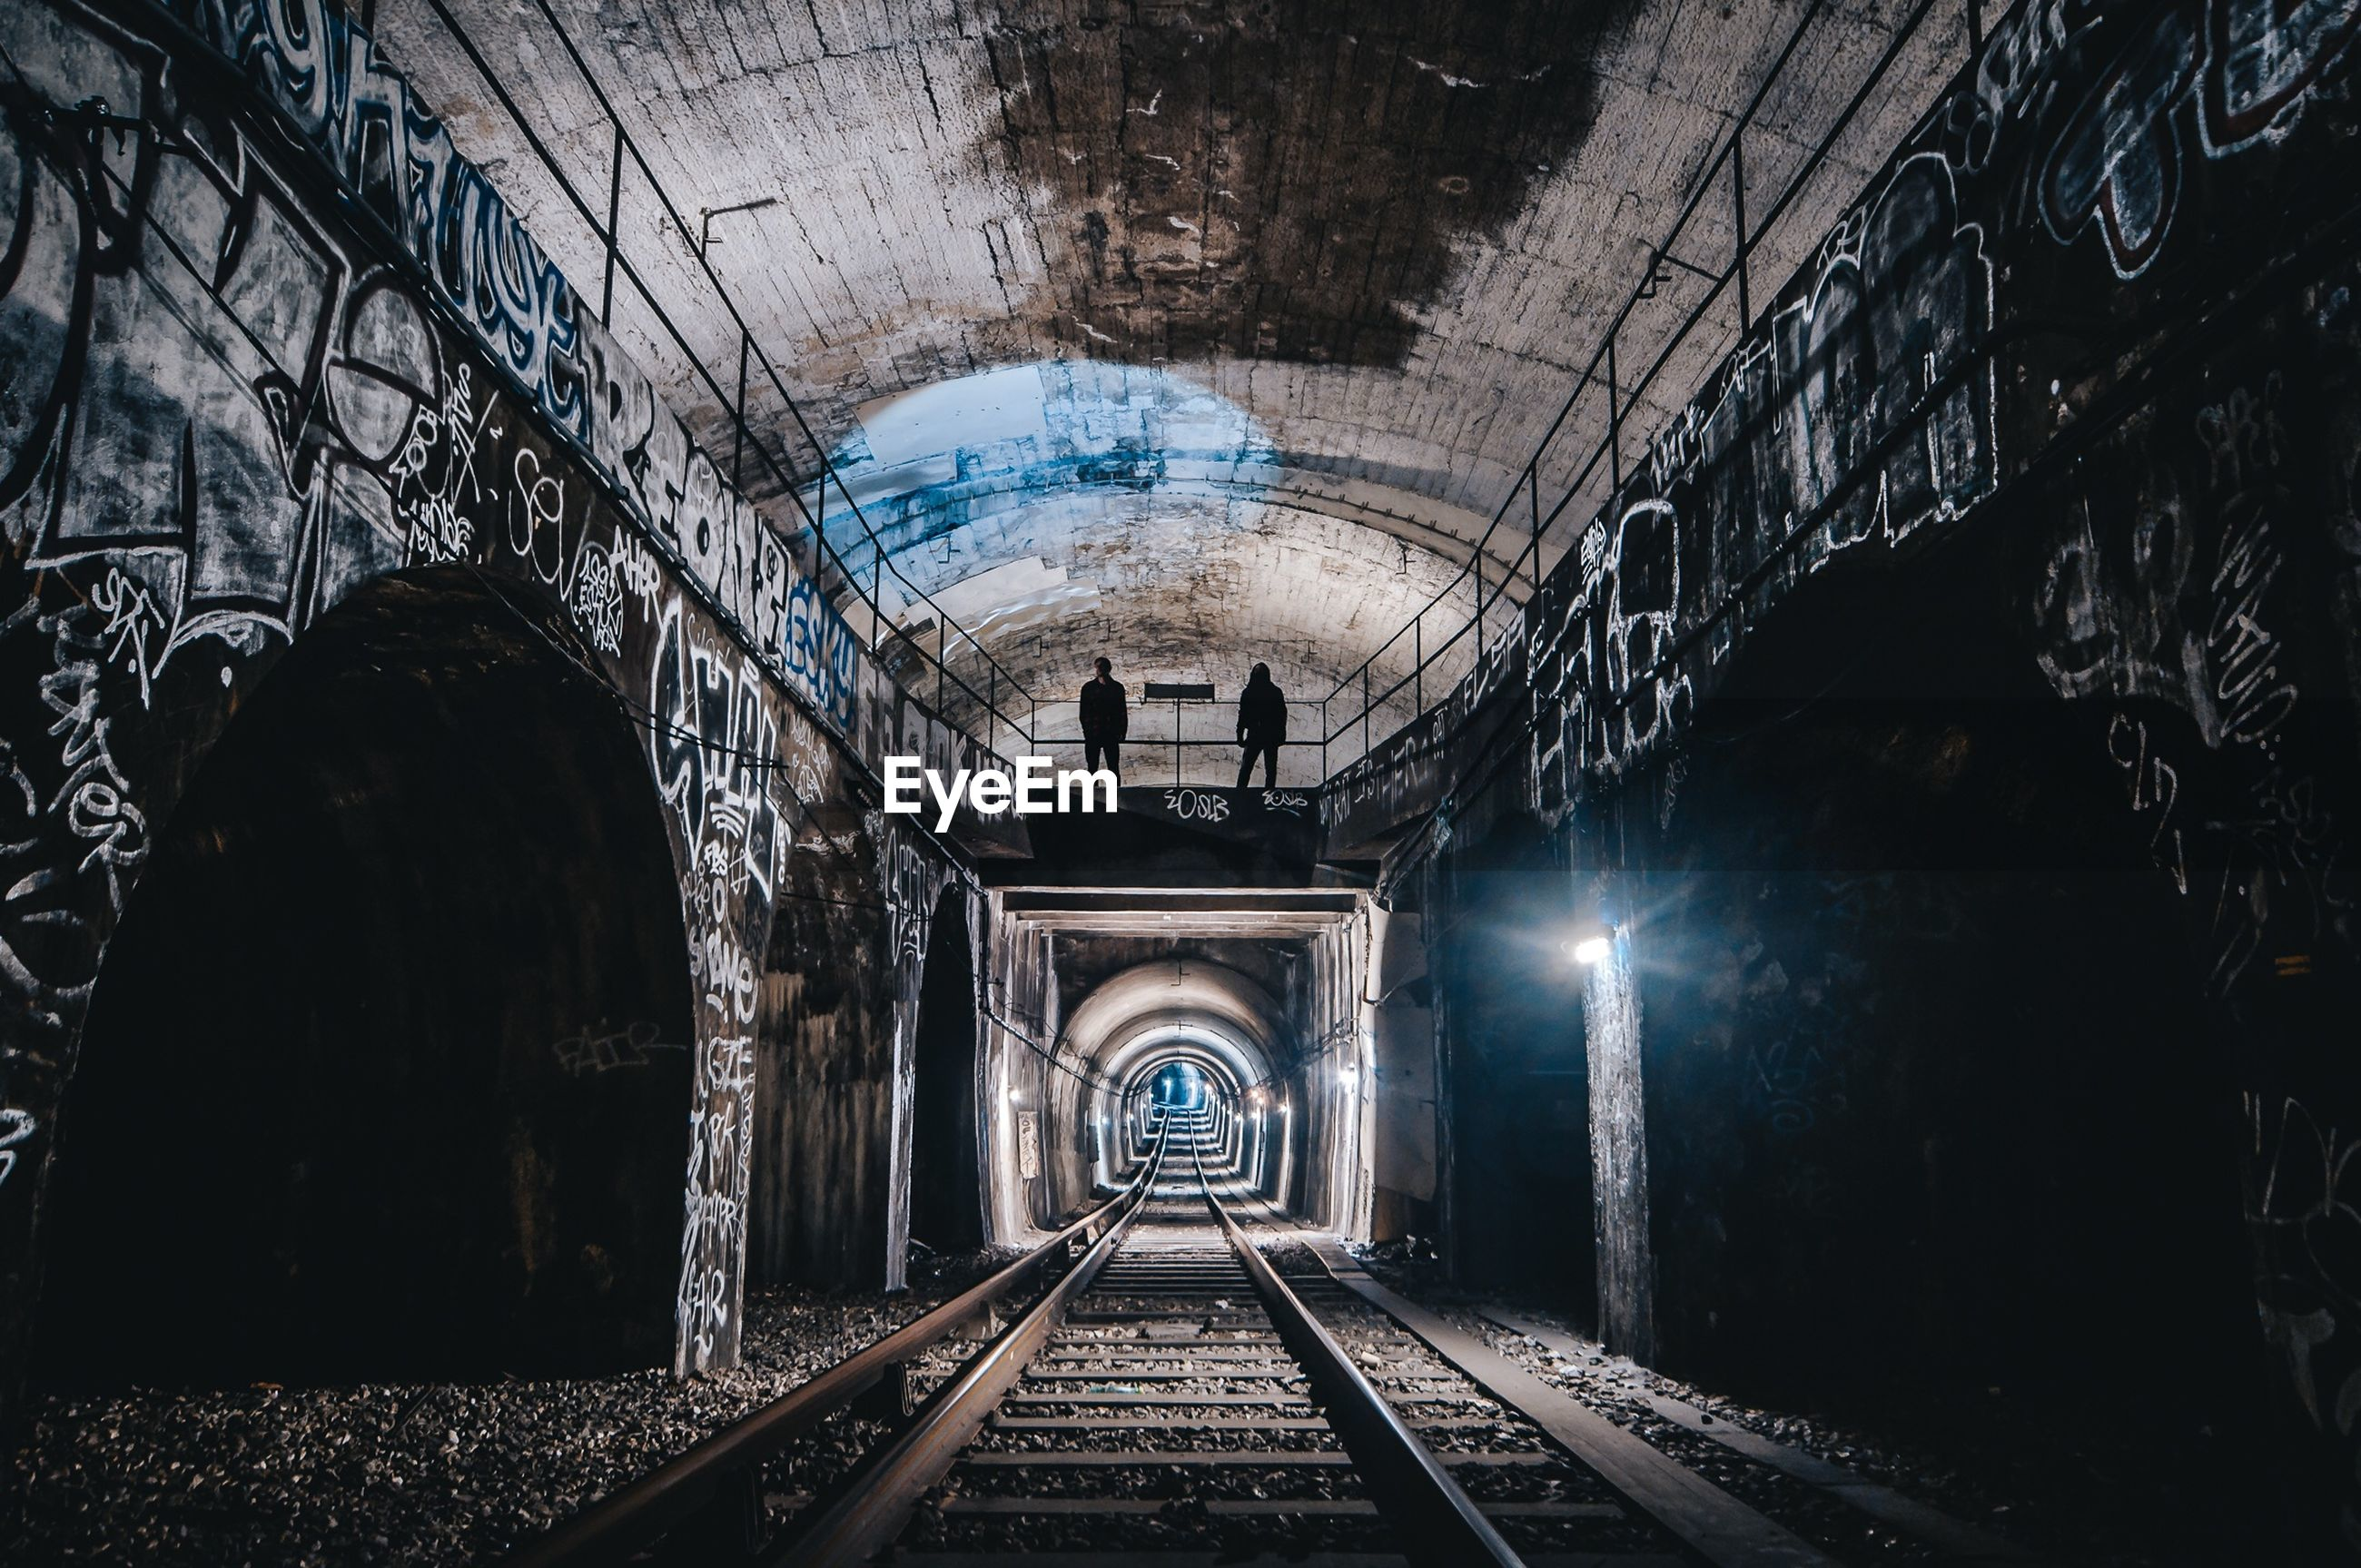 architecture, rail transportation, arch, tunnel, track, the way forward, direction, railroad track, built structure, transportation, indoors, public transportation, no people, diminishing perspective, illuminated, mode of transportation, wall - building feature, abandoned, travel, vanishing point, light at the end of the tunnel, long, ceiling